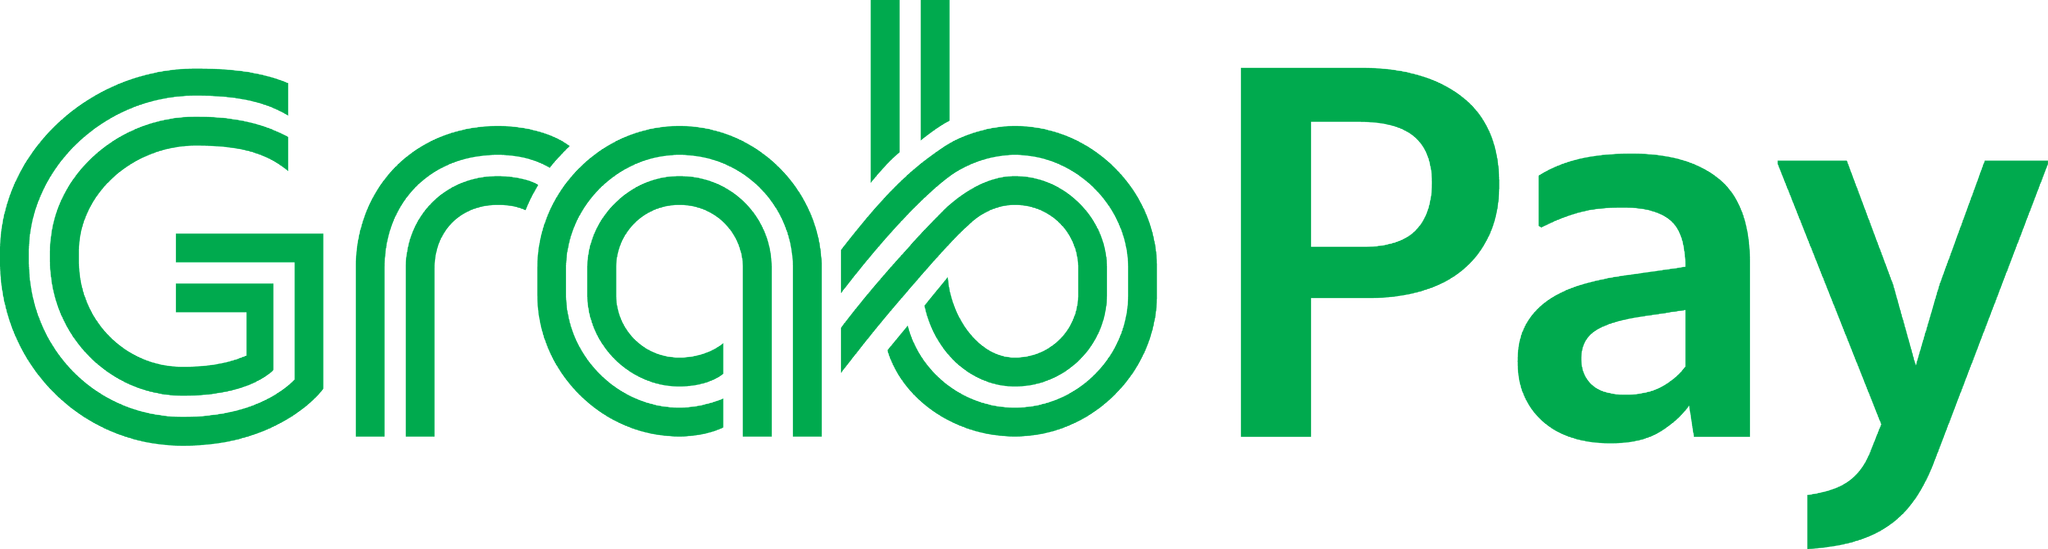 Grab Is One Of The Most Frequently Used O2o Mobile.